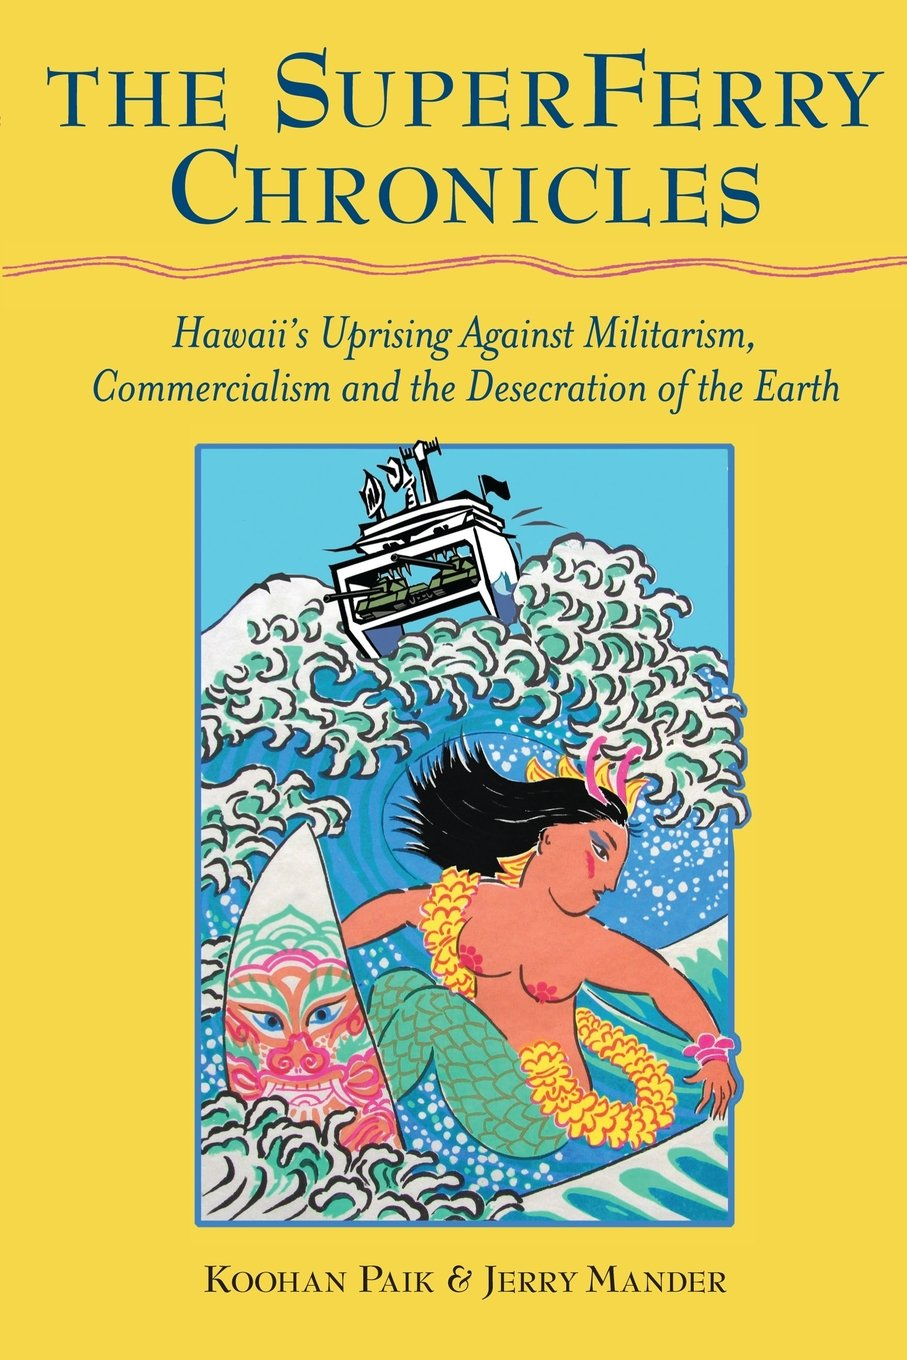 The Superferry Chronicles: Hawaii's Uprising Against Militarism, Mercialism, And The Desecration Of The Earth: Jerry Mander, Koohan Paik:  9781935646174: